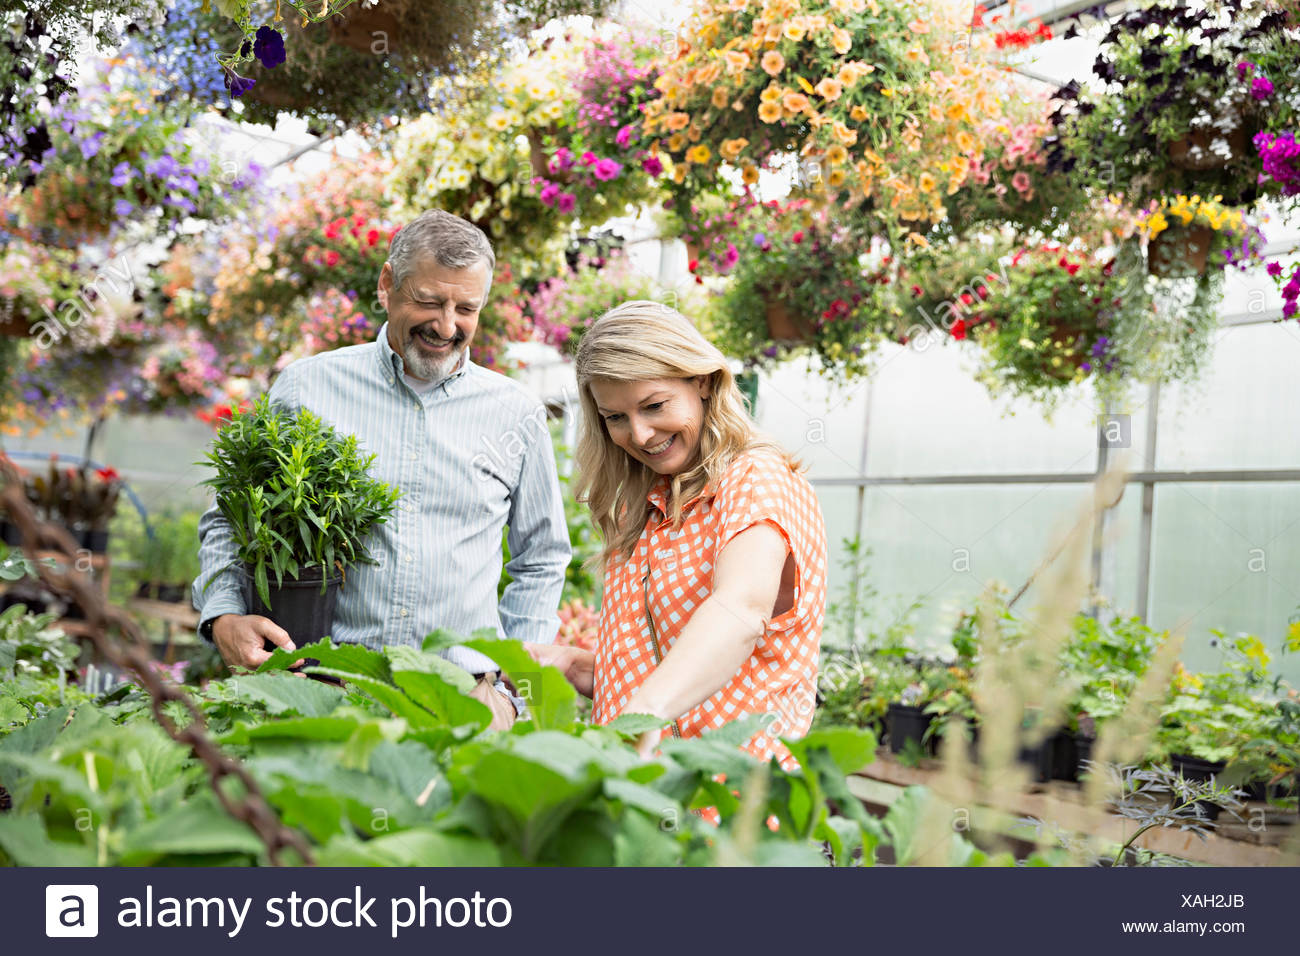 Couple shopping for plants in plant nursery greenhouse - Stock Image